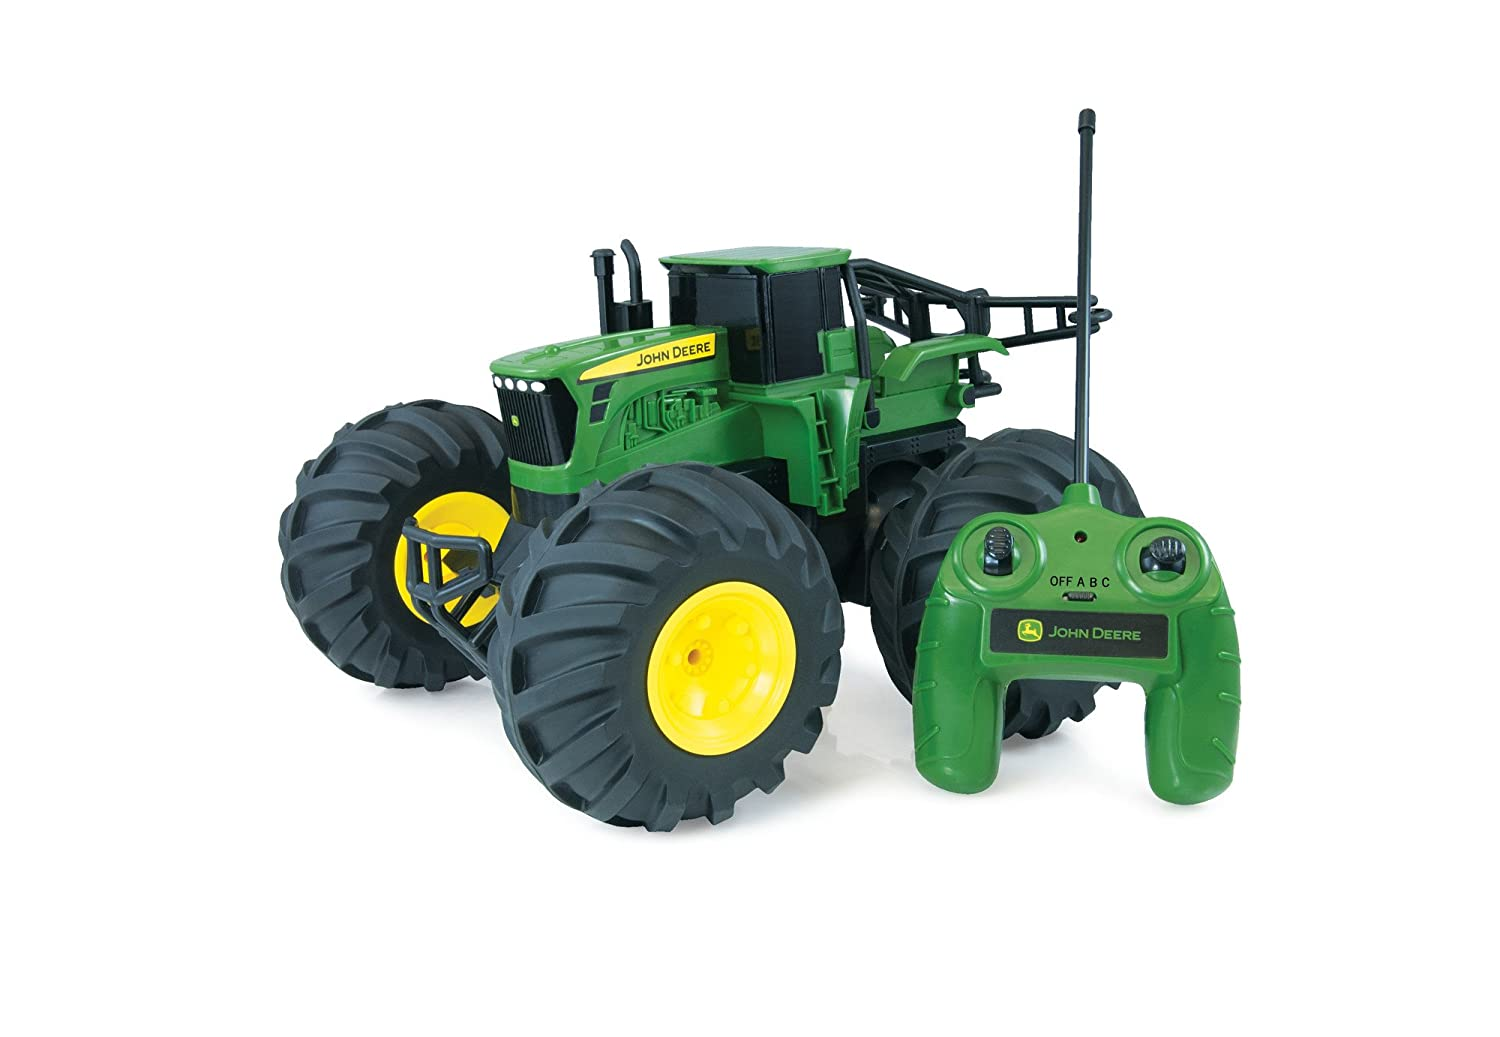 2a7134a6602 John Deere Monster Wheels Remote Controlled RC Giant Inflatable Wheels Farm  Toy 6 years plus: Amazon.co.uk: Toys & Games